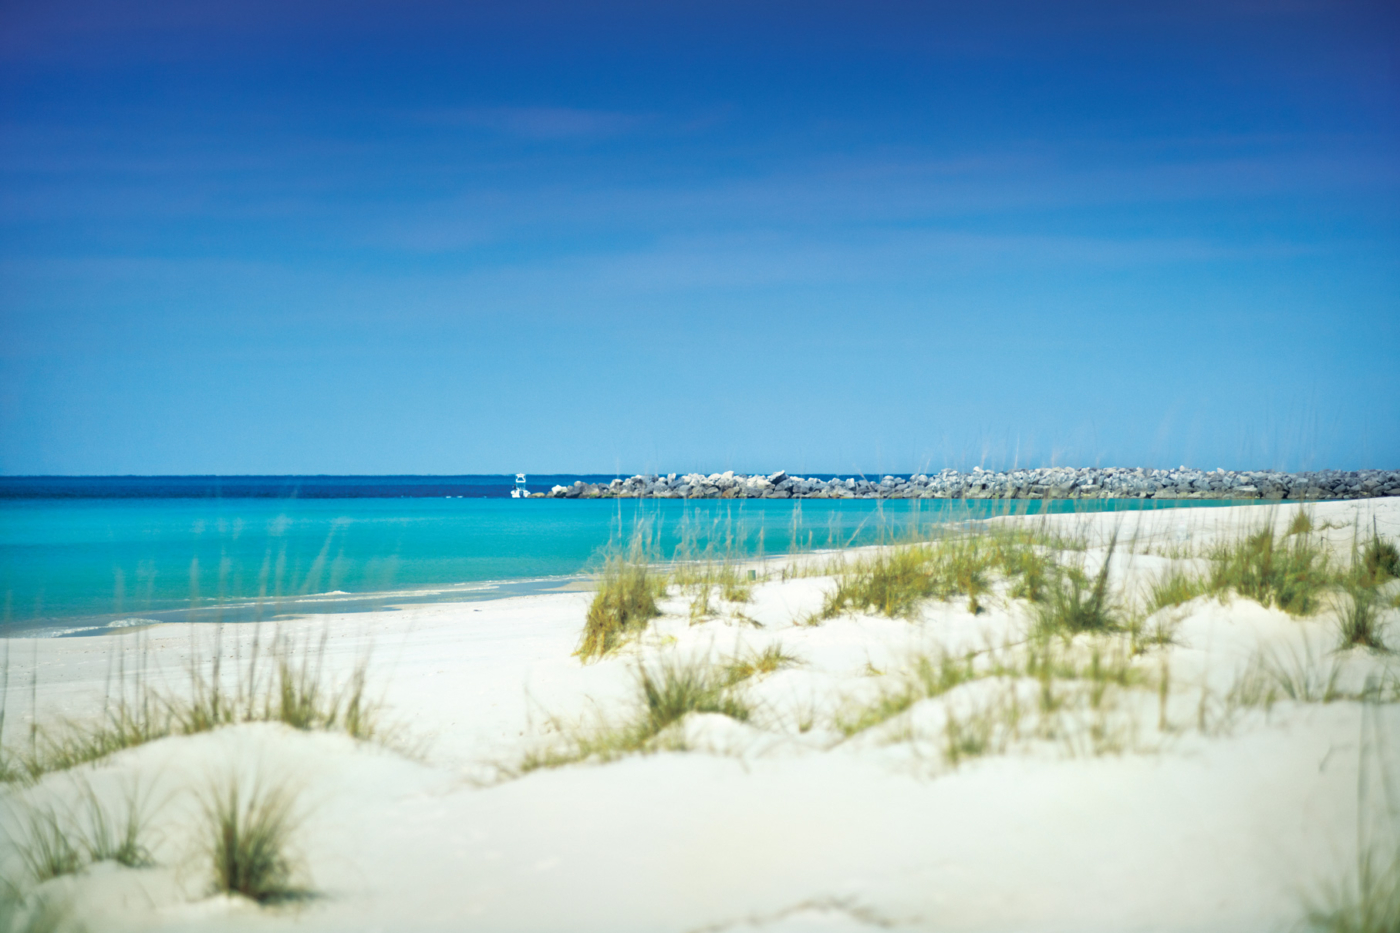 Image of emerald ocean water and white sand beach.